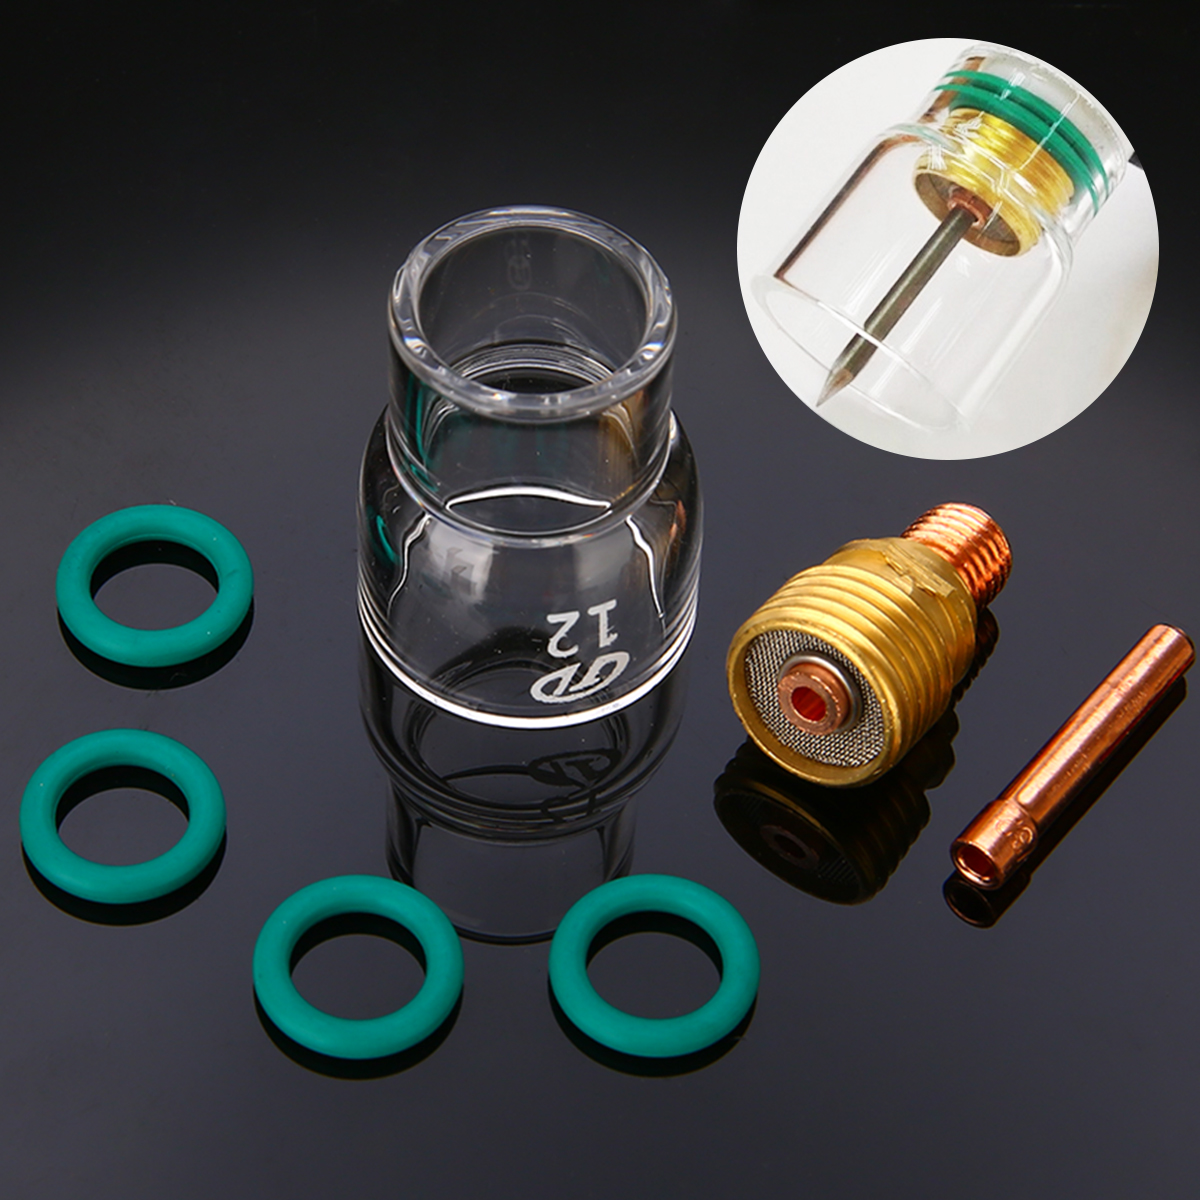 7pcs Torch TIG Welding Kit Stubby Mayitr #12 Pyrex Welding Cup Kit Collets Body Gas Lens 2.4 Mm For WP-9/WP-20/WP-25